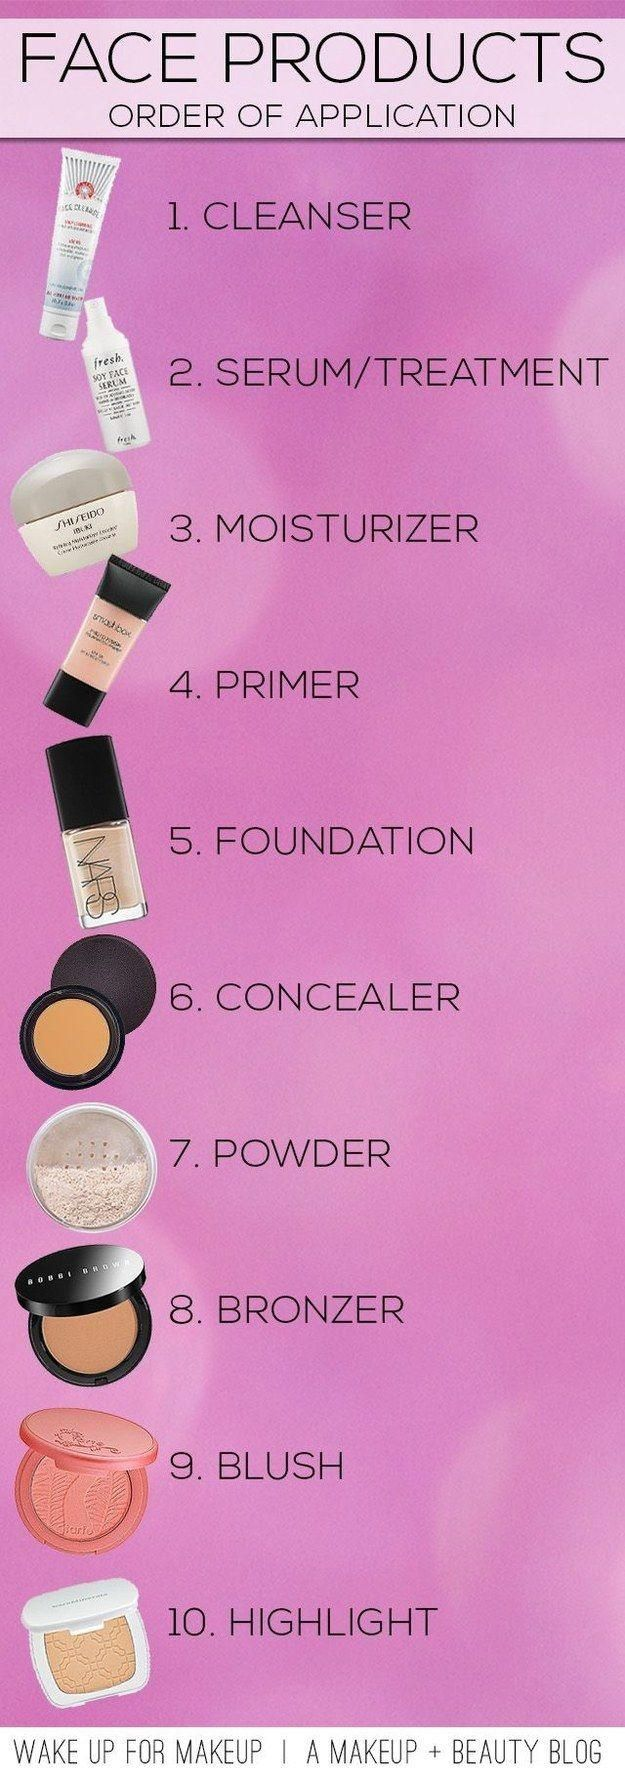 Order of application for face makeup